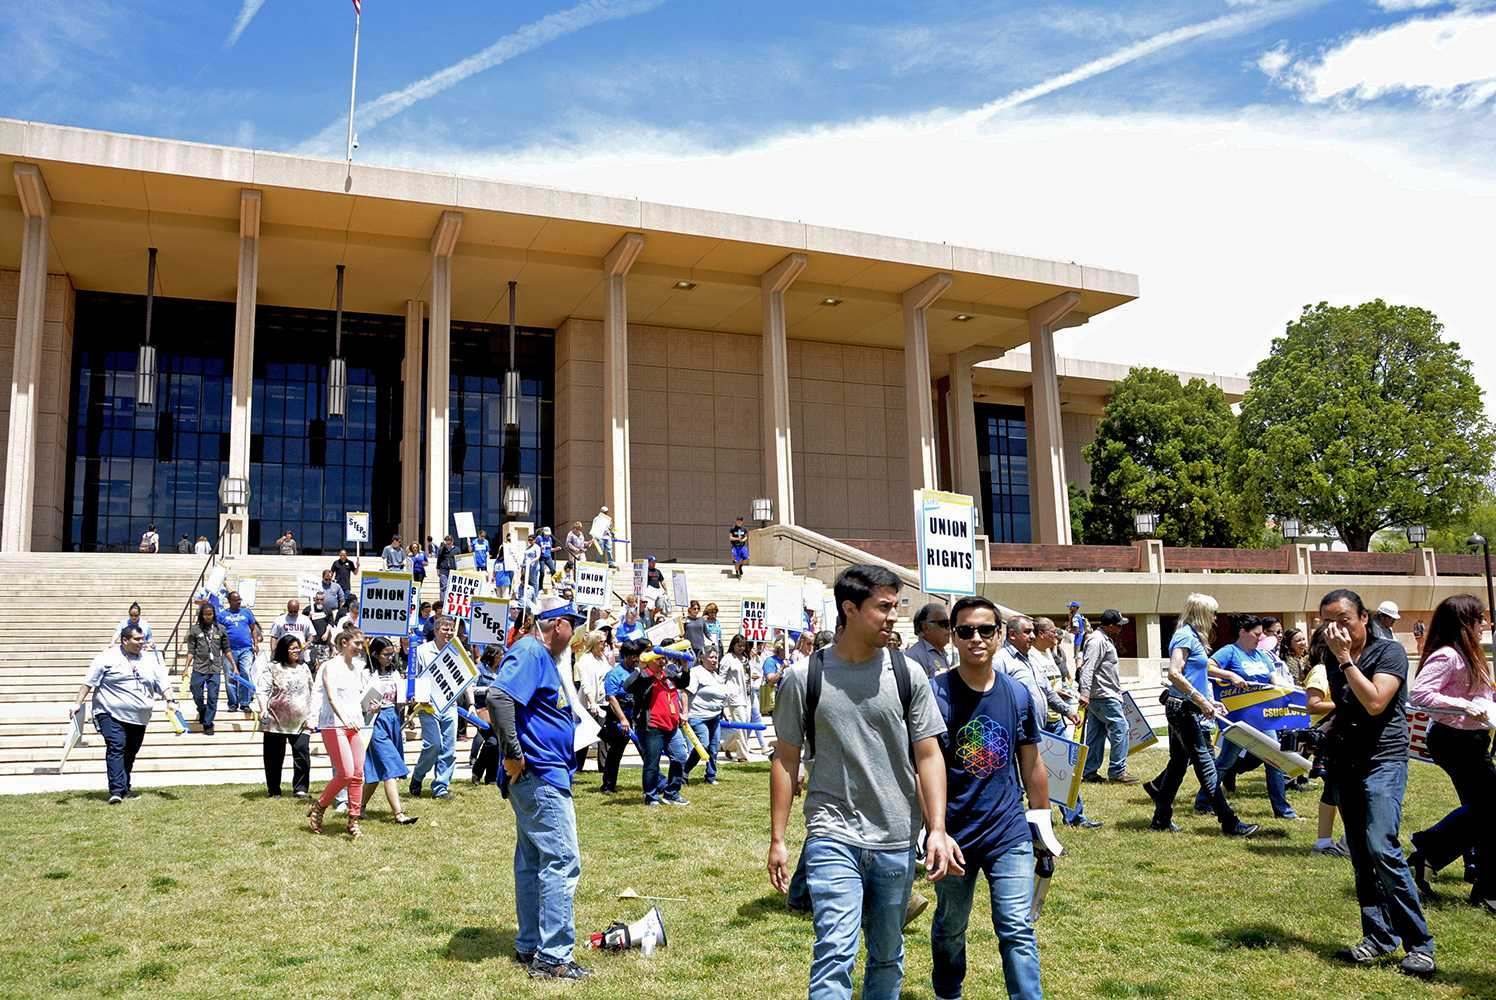 CSUEU members assemble on the Oviatt Lawn  on Wednesday, April 26th to raise awareness for the protection of workers' rights. Photo credit: Marja Ziemer